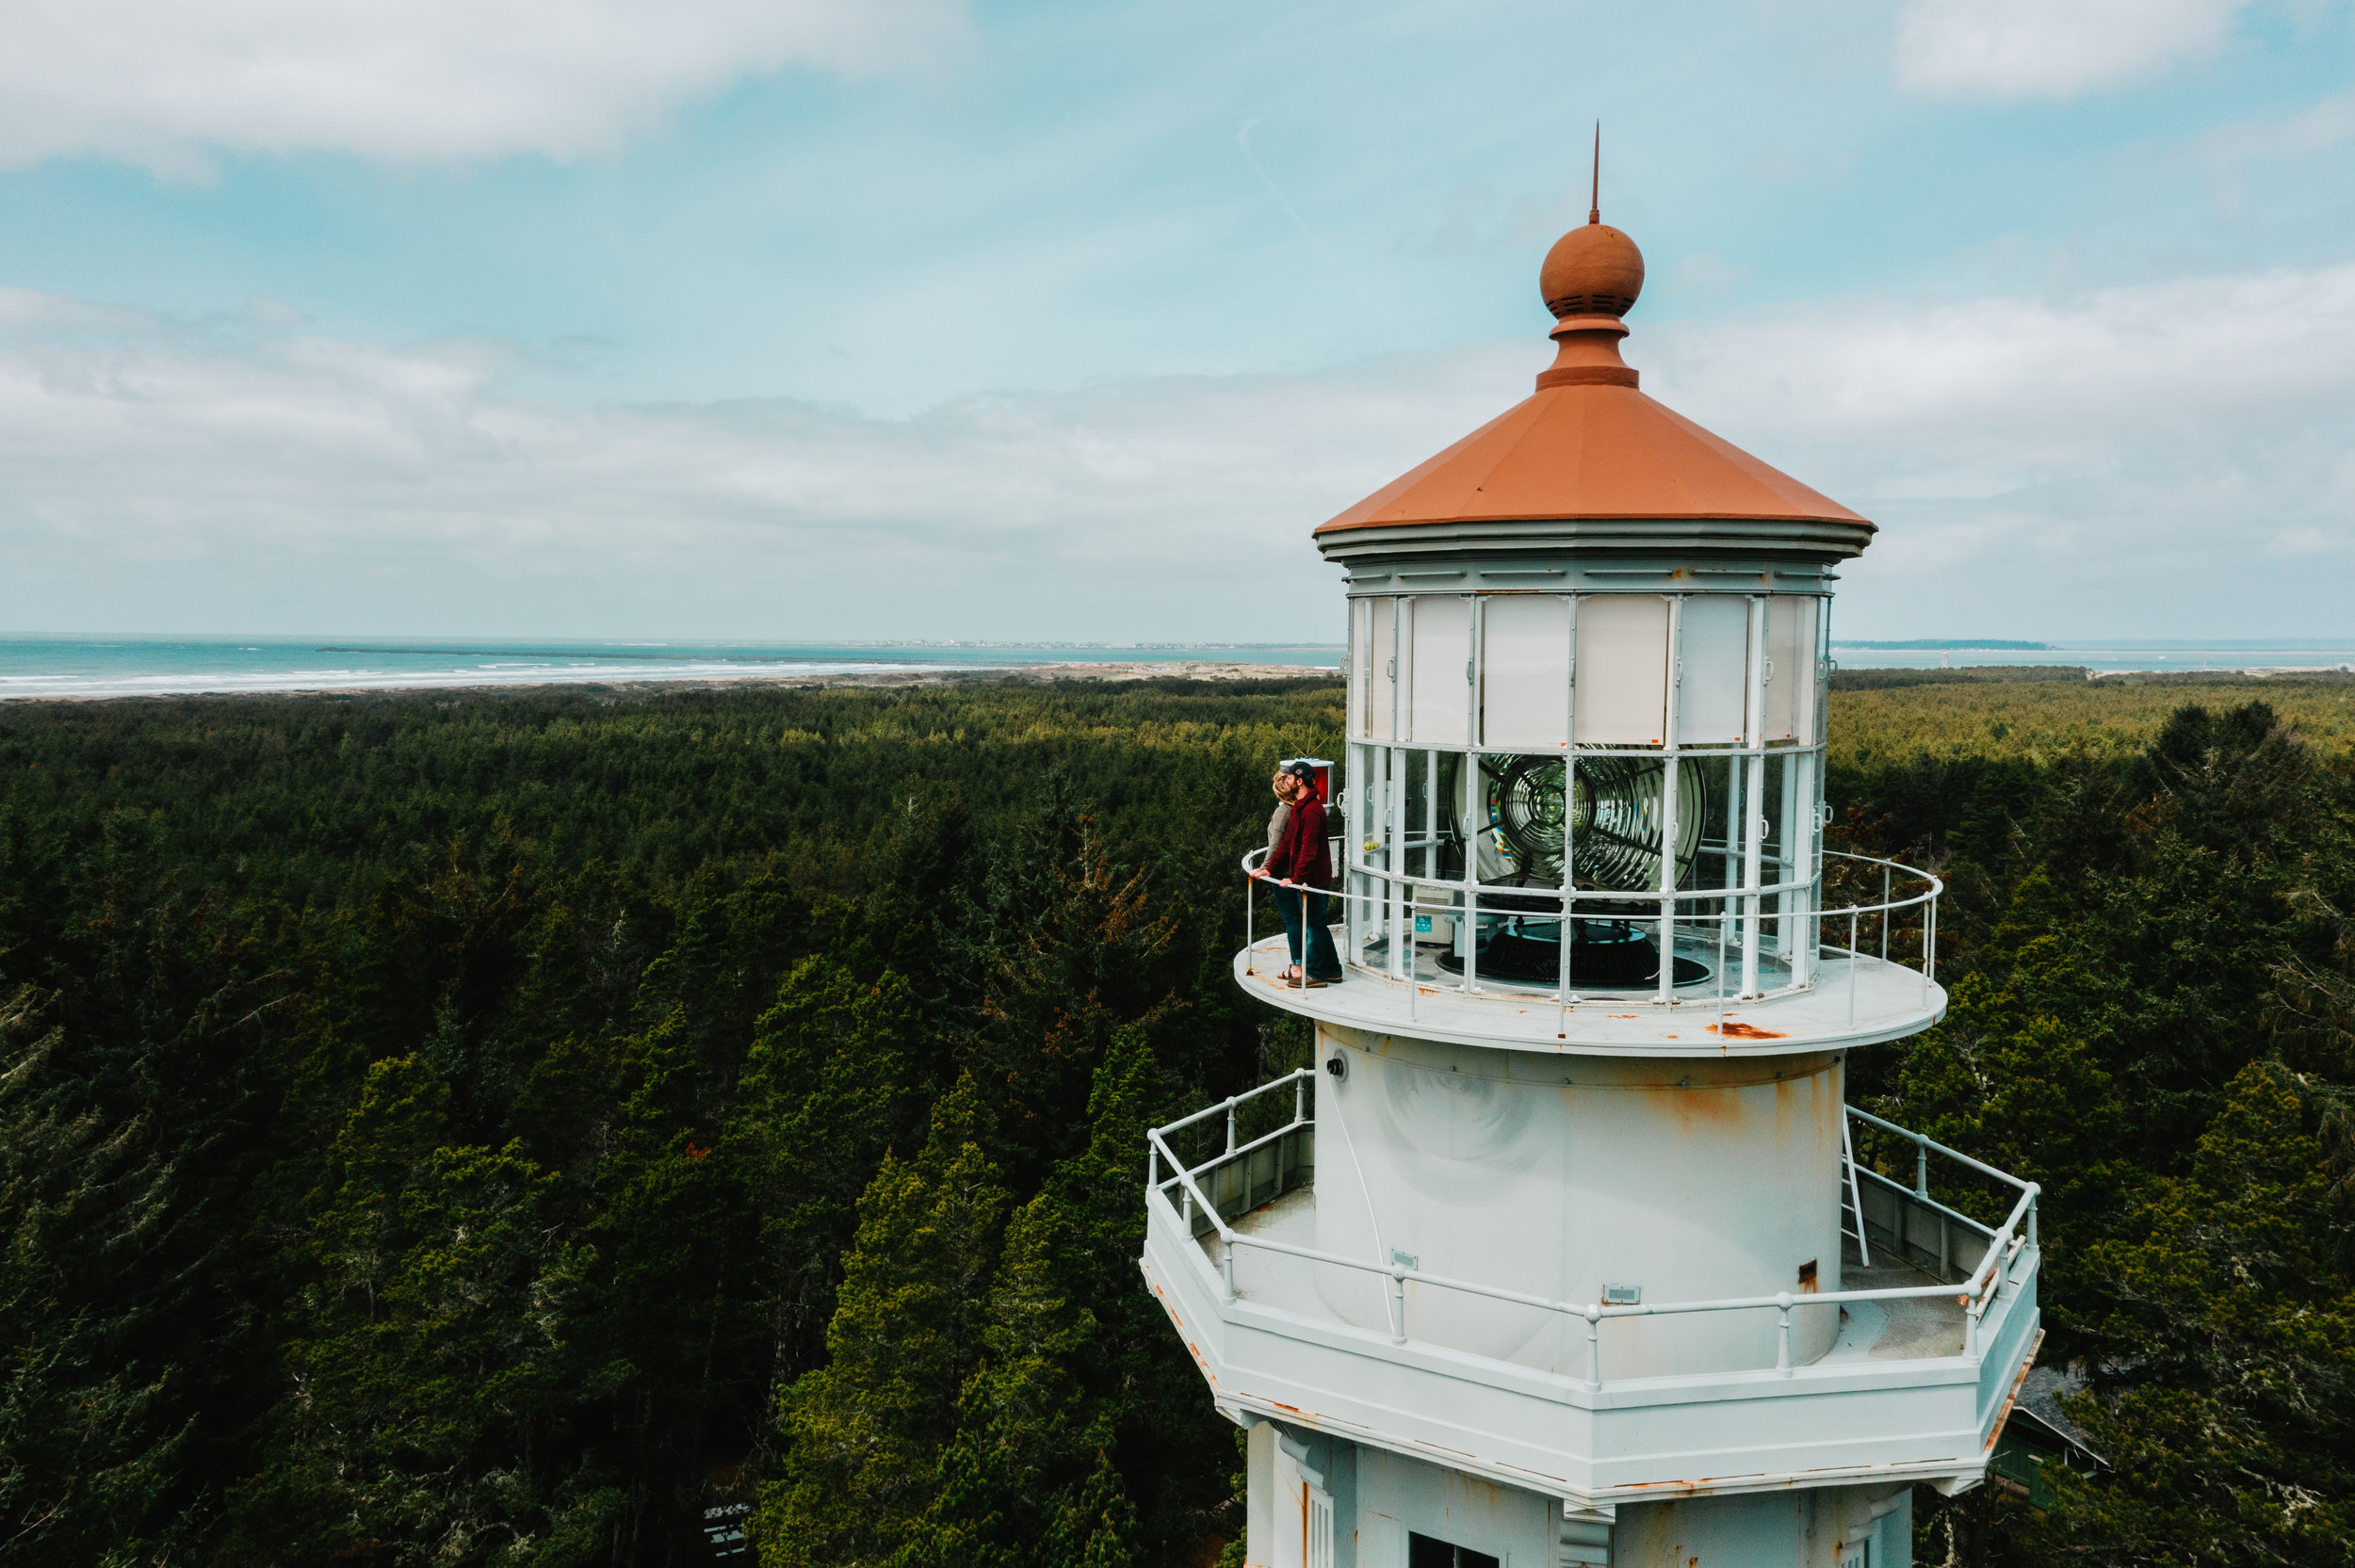 #4 Climb the Lighthouse - Visit the tallest lighthouse in Washington and the 3rd tallest on the west coast. The Grays Harbor Lighthouse is an experience for all.